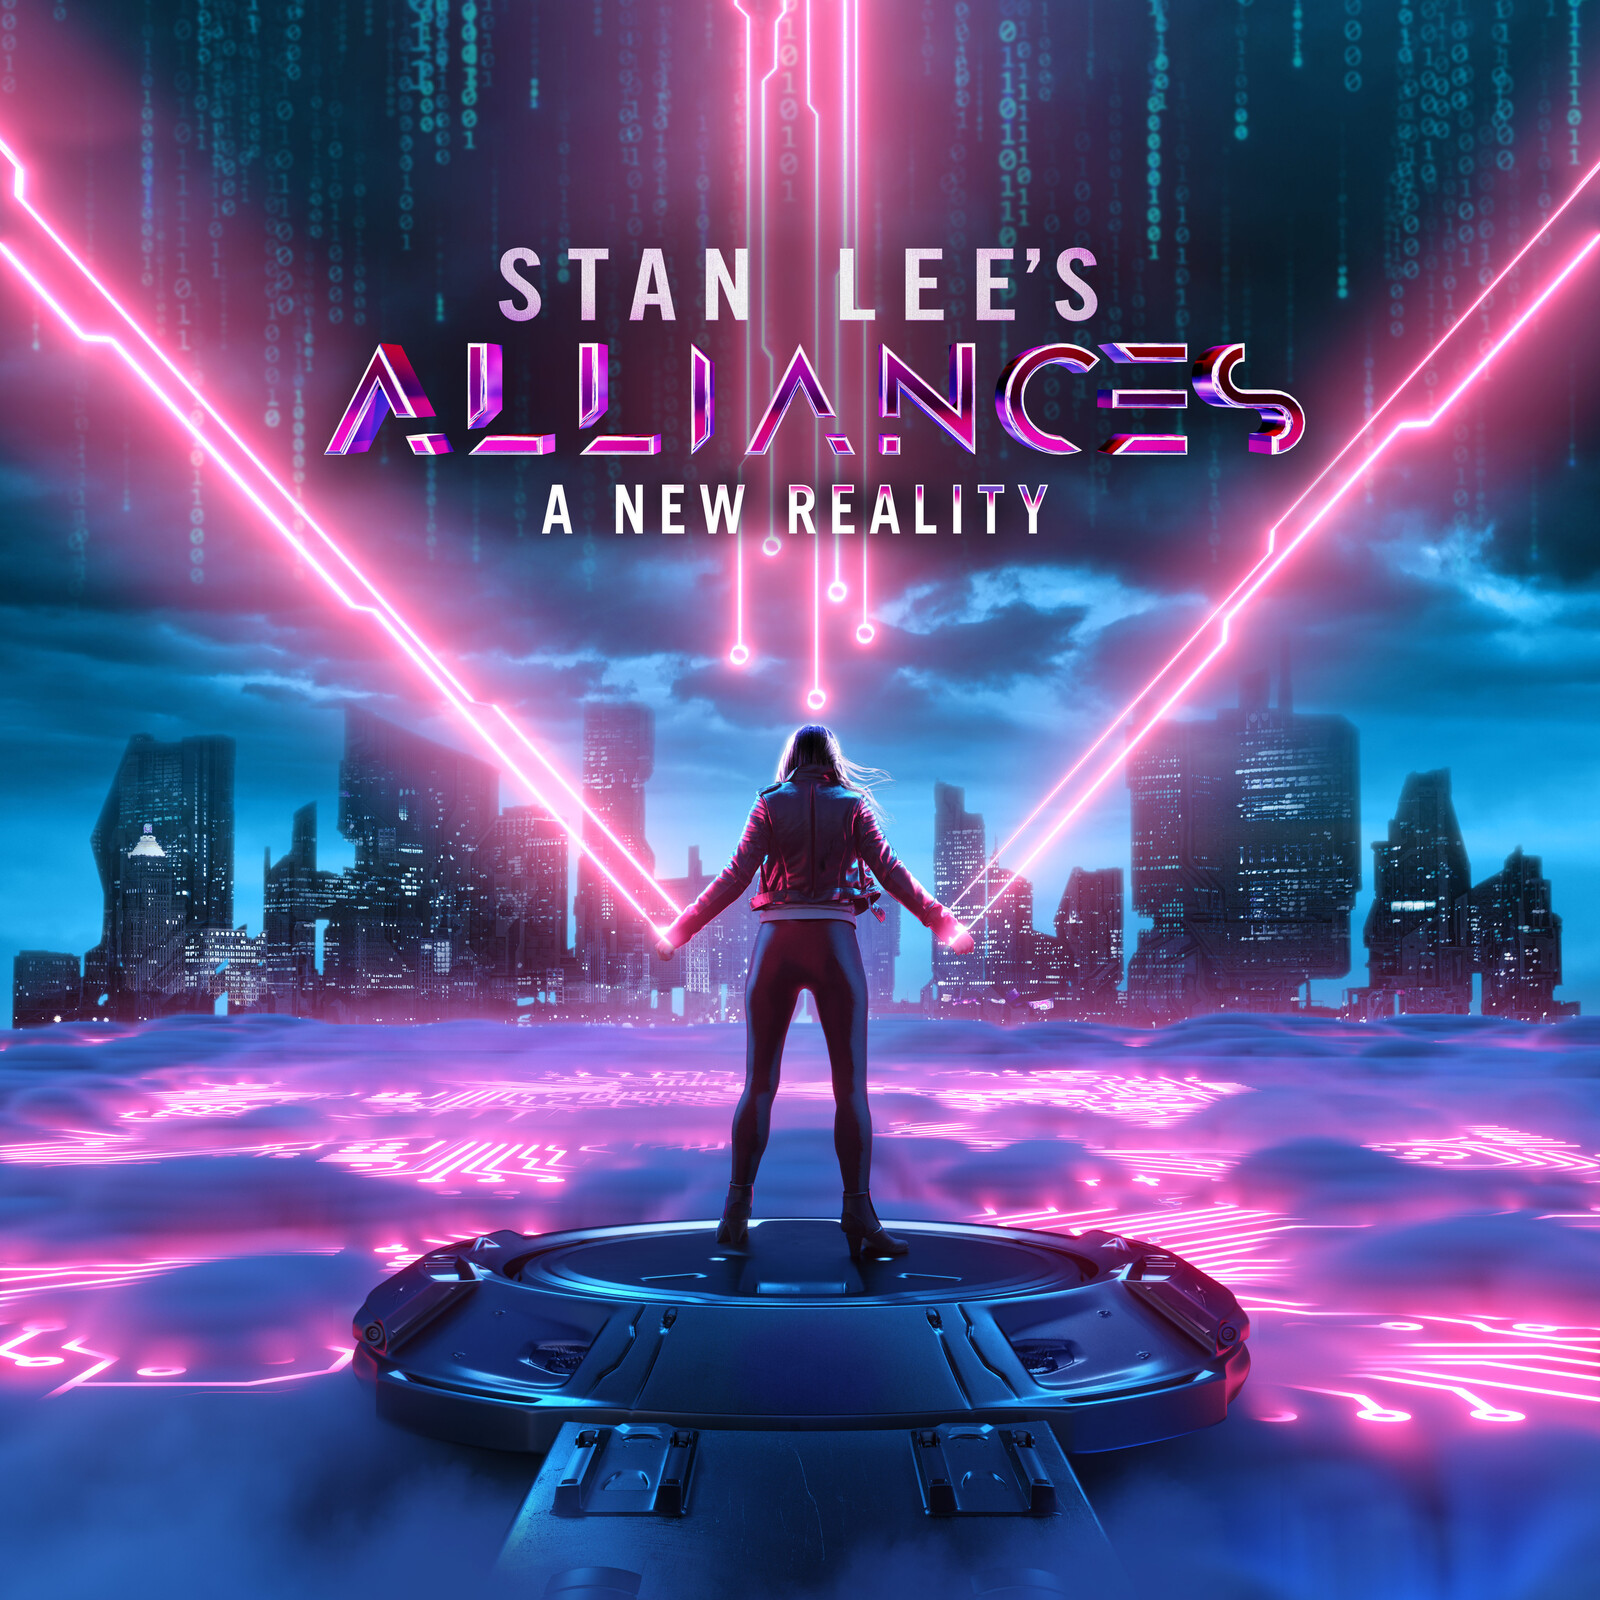 Stan Lee's Alliances : A New Reality